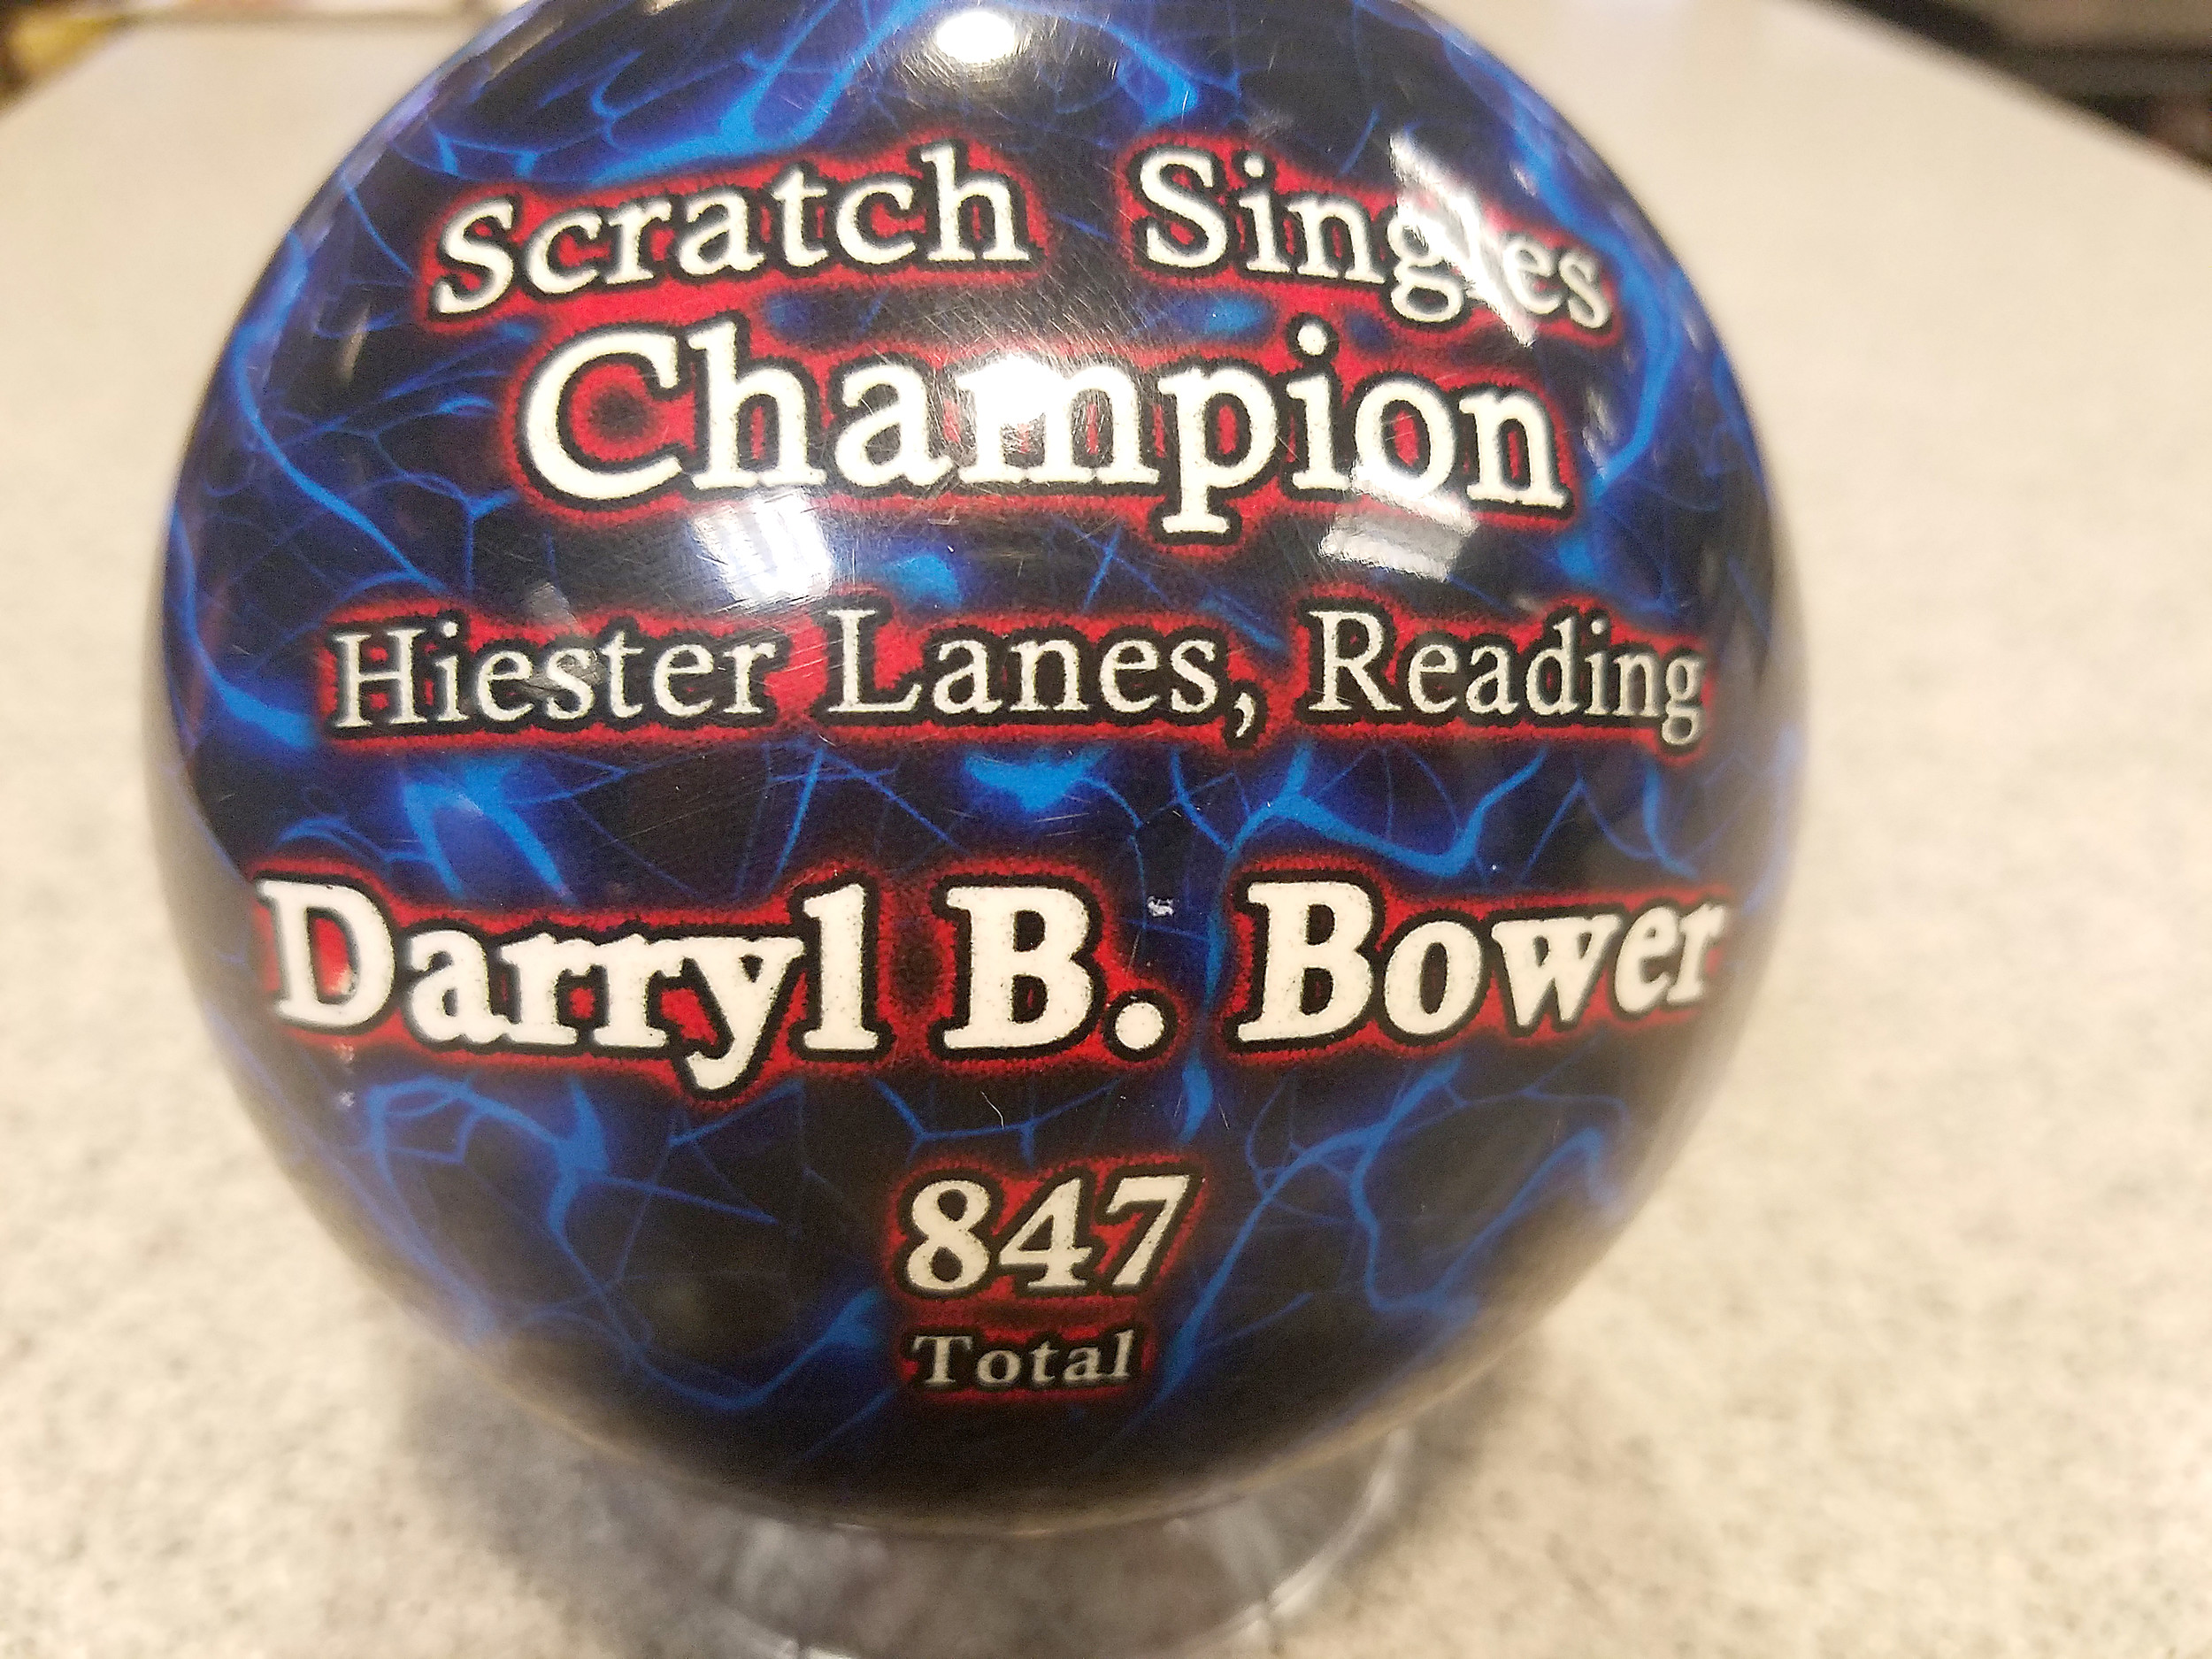 Darryl Bower received this miniature bowling bowl for winning the singles championship.